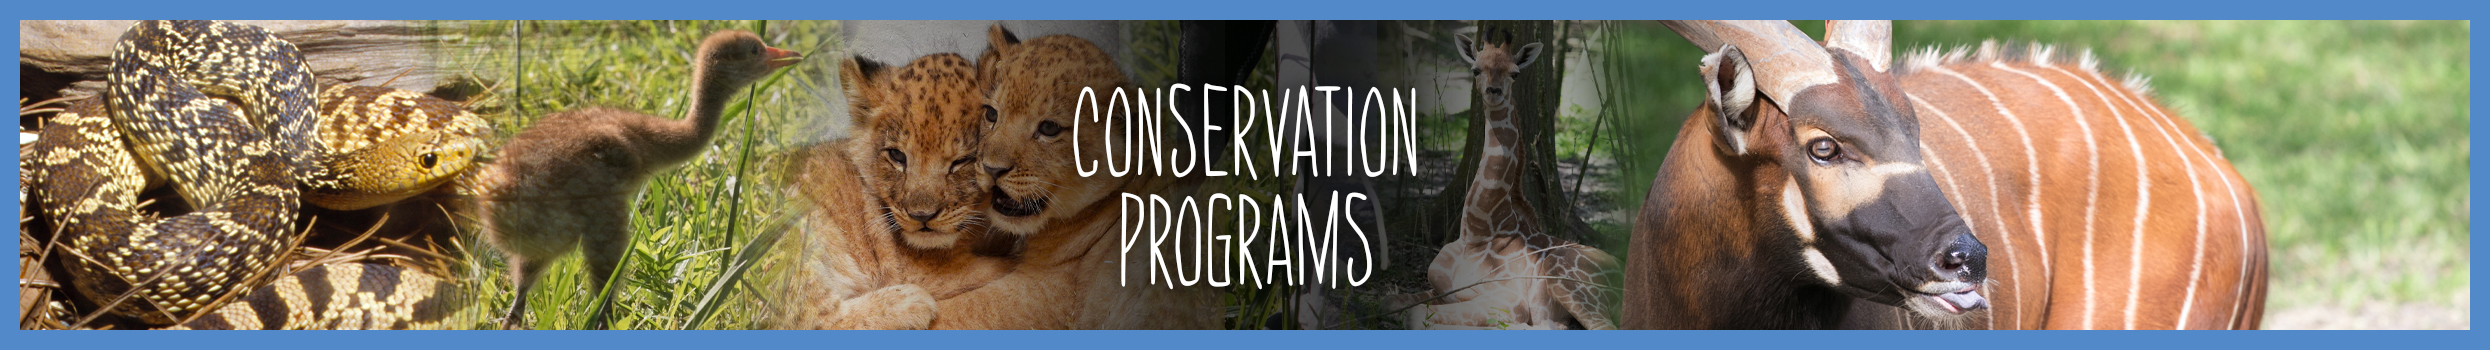 conservation-programs-header-slider